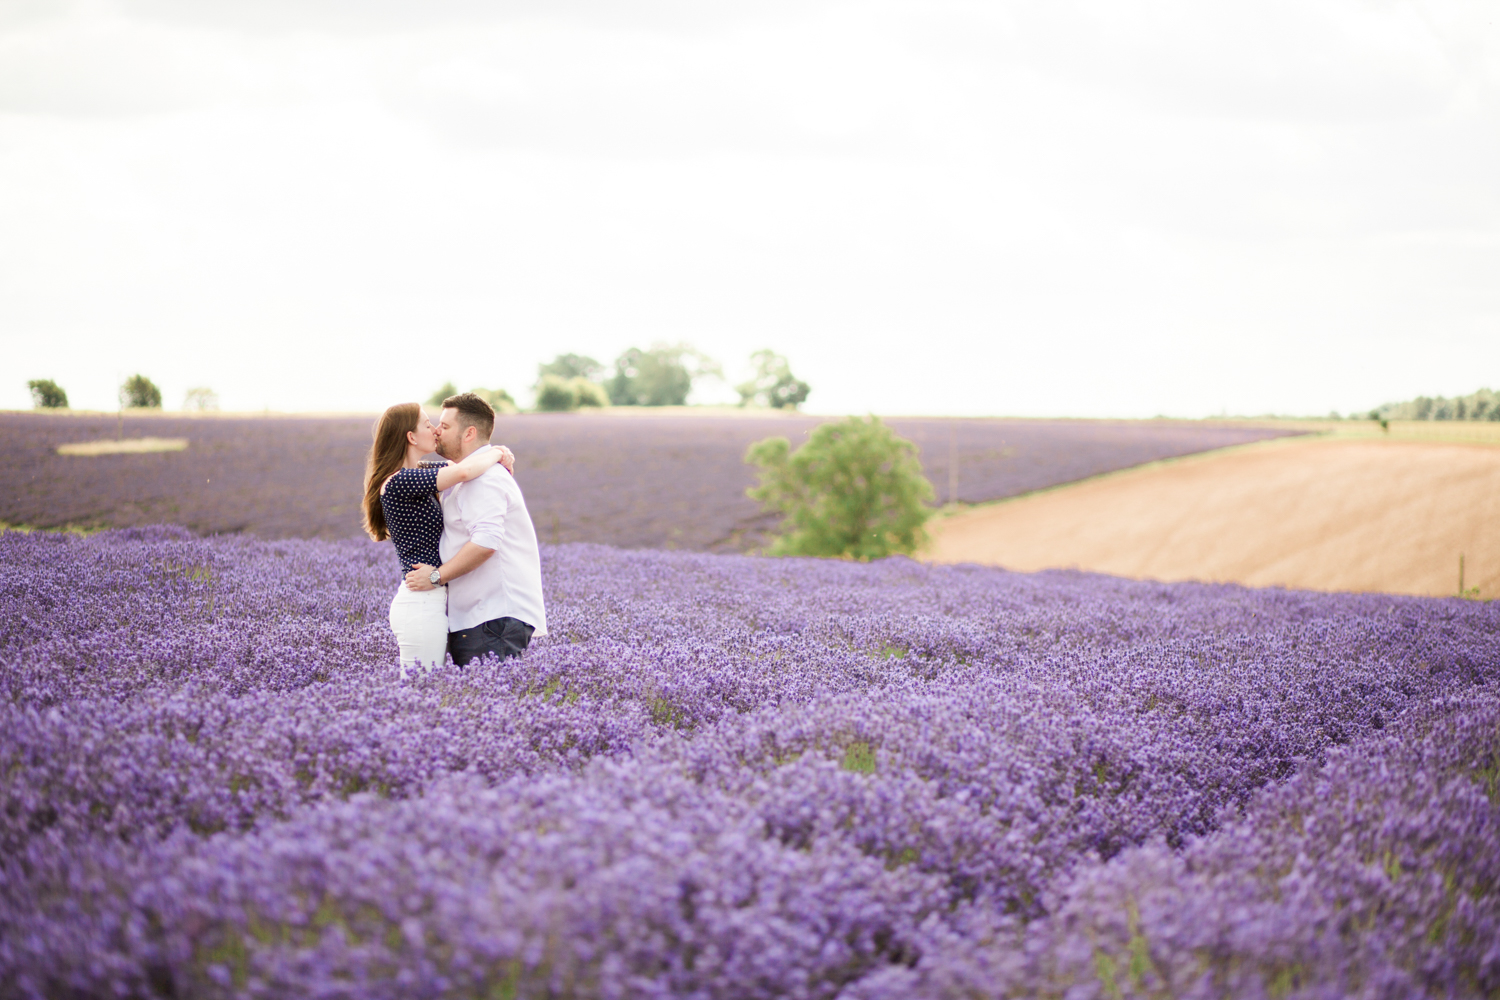 Sophie-Evans-Photograpy-Cotswold-Lavander-Engagement-shoot-Cotswold-wedding-photographer-9.jpg